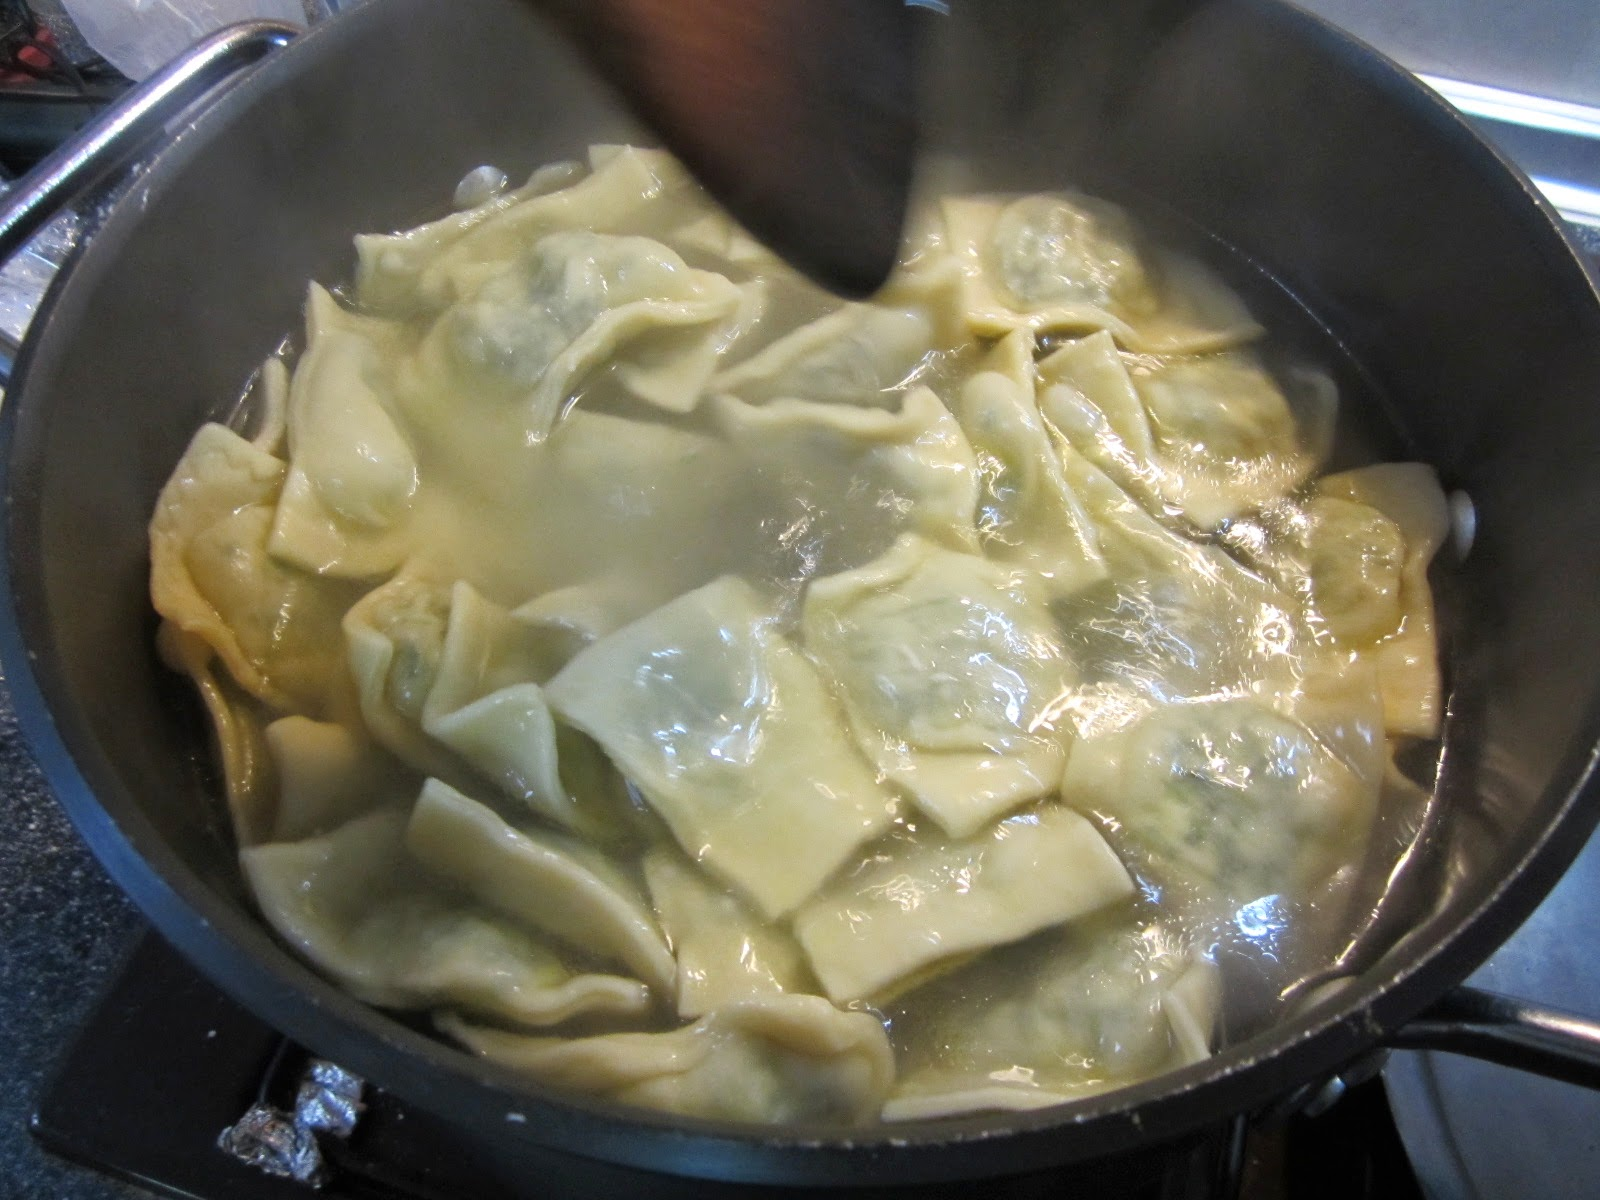 Food Lust People Love: Homemade spinach and cheese ravioli do take a little time but making your own pasta dough is right up there on the satisfaction scale with baking bread. You know what's in it. It's fresh and the taste is far superior to store-bought. Best of all, it's surprisingly easy.